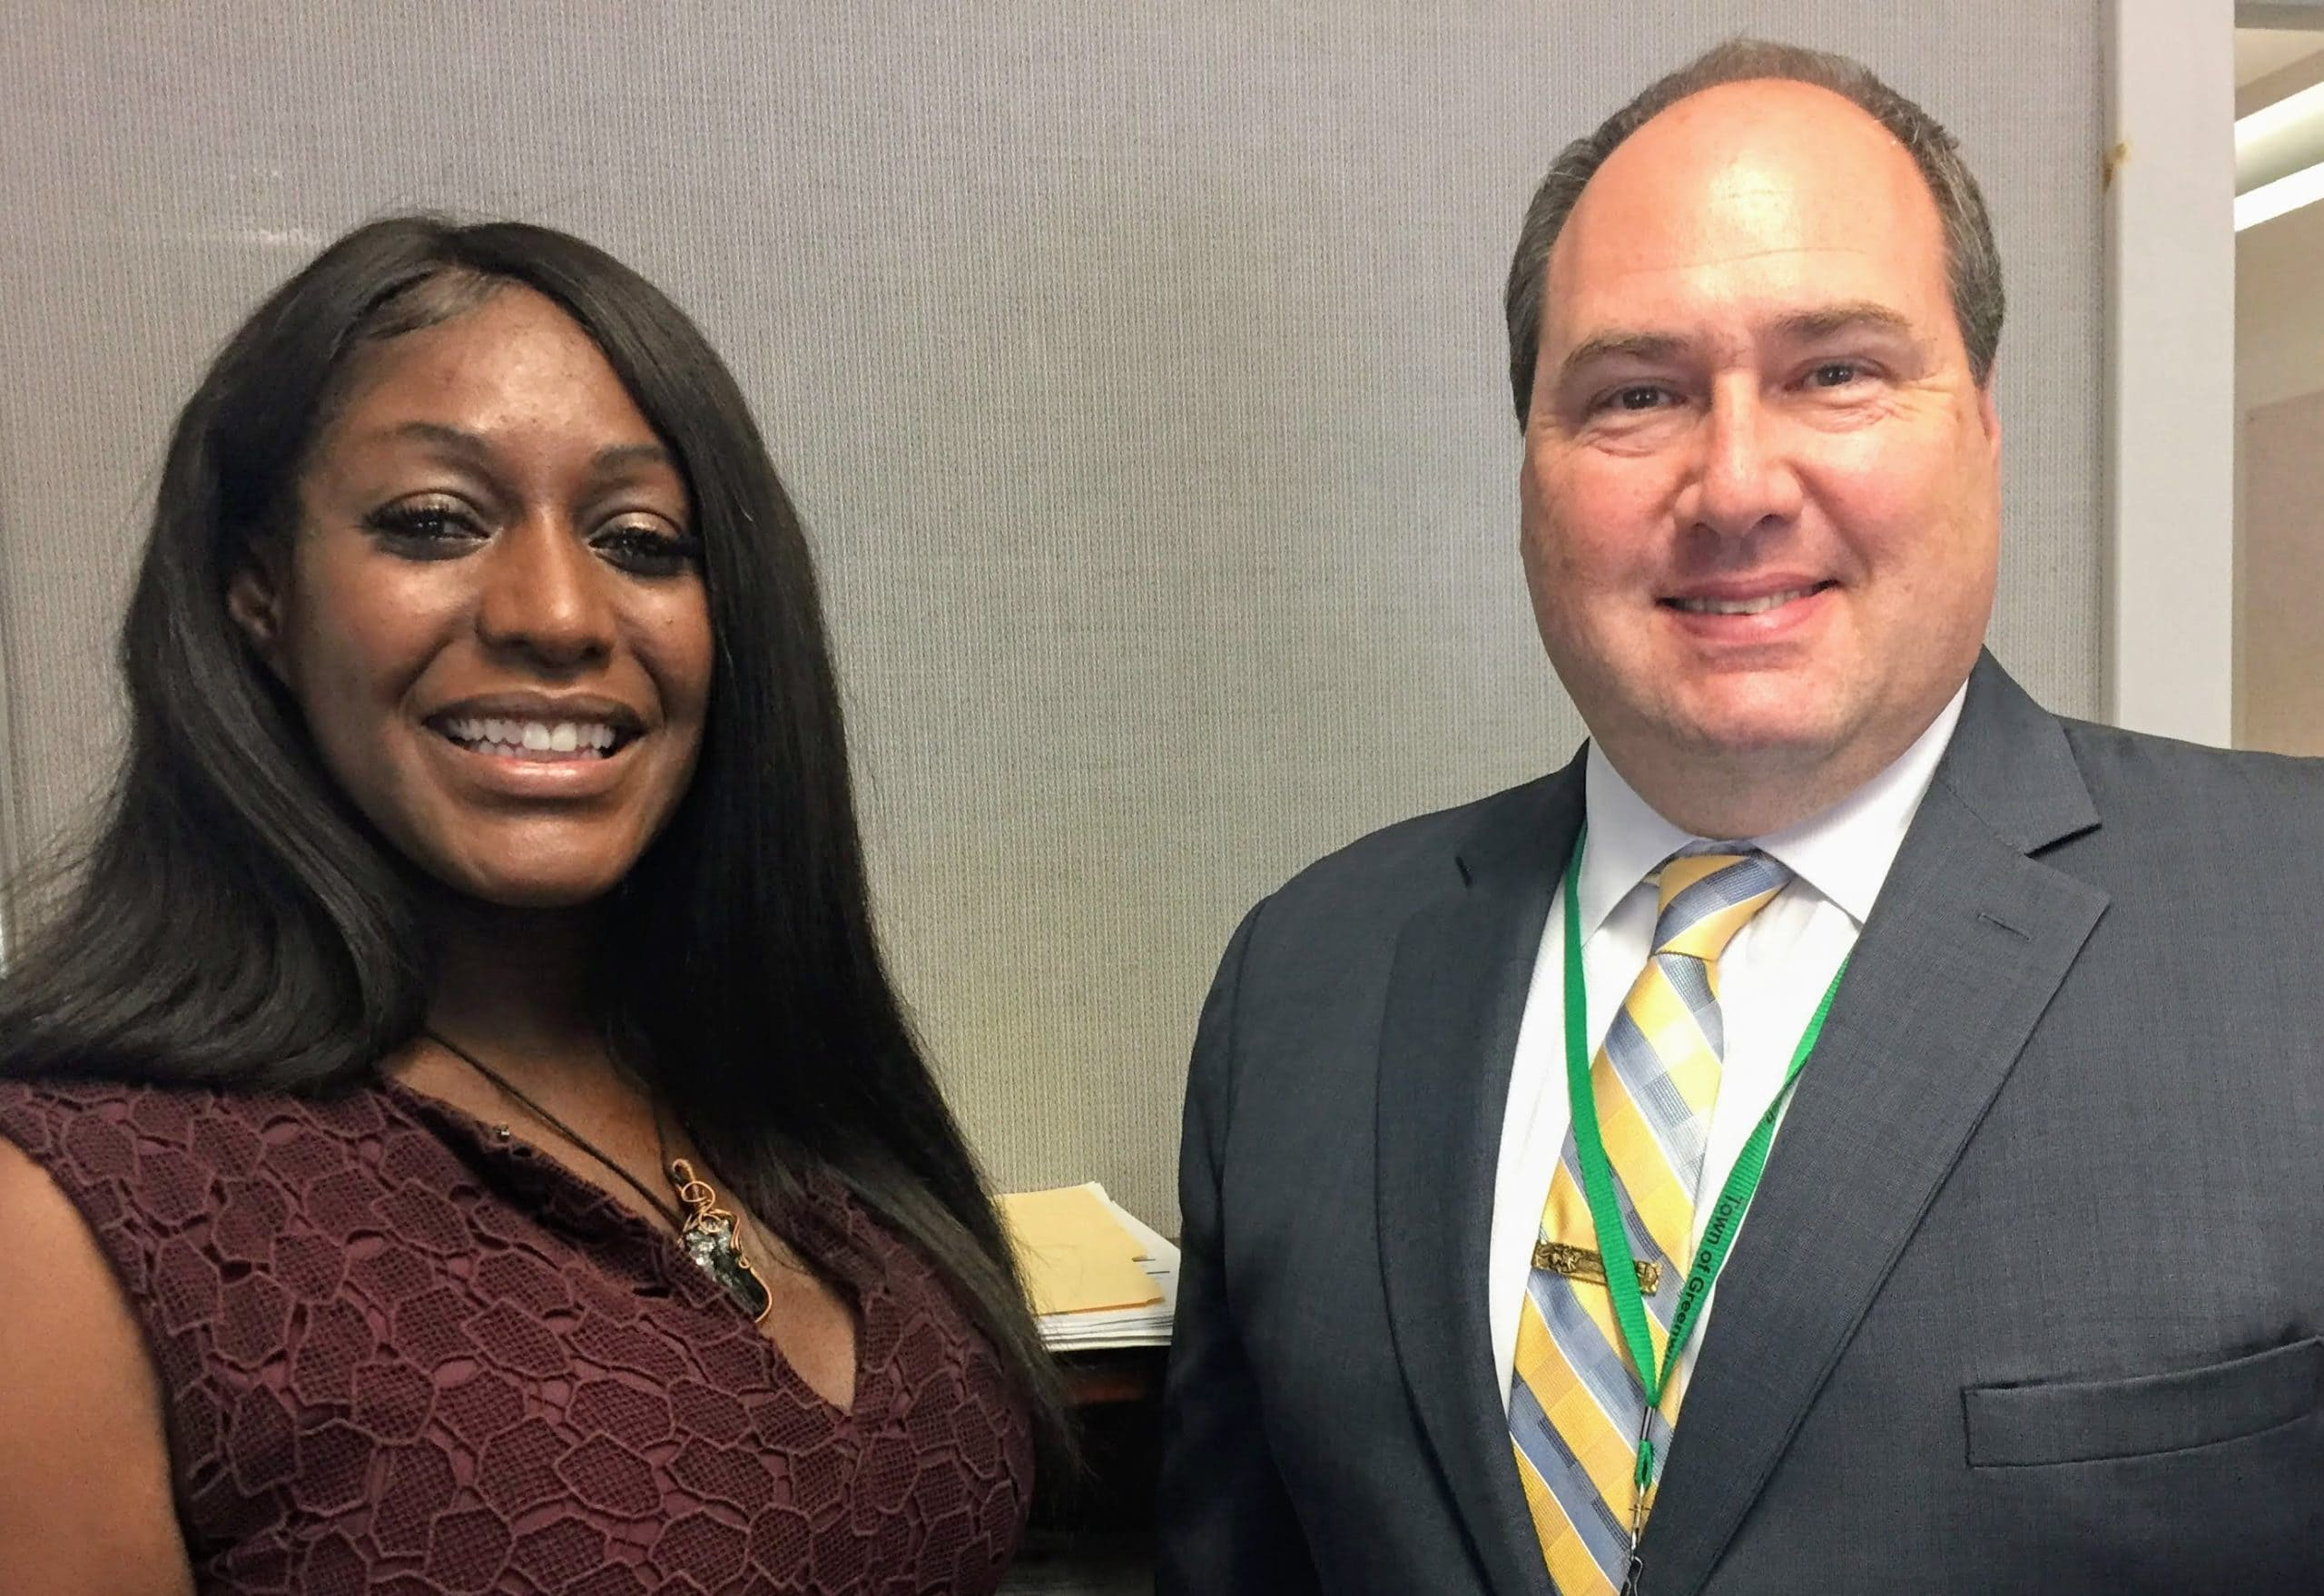 Welcome to the Witherell: Nadia Benson, RN and Nunzio Raimo